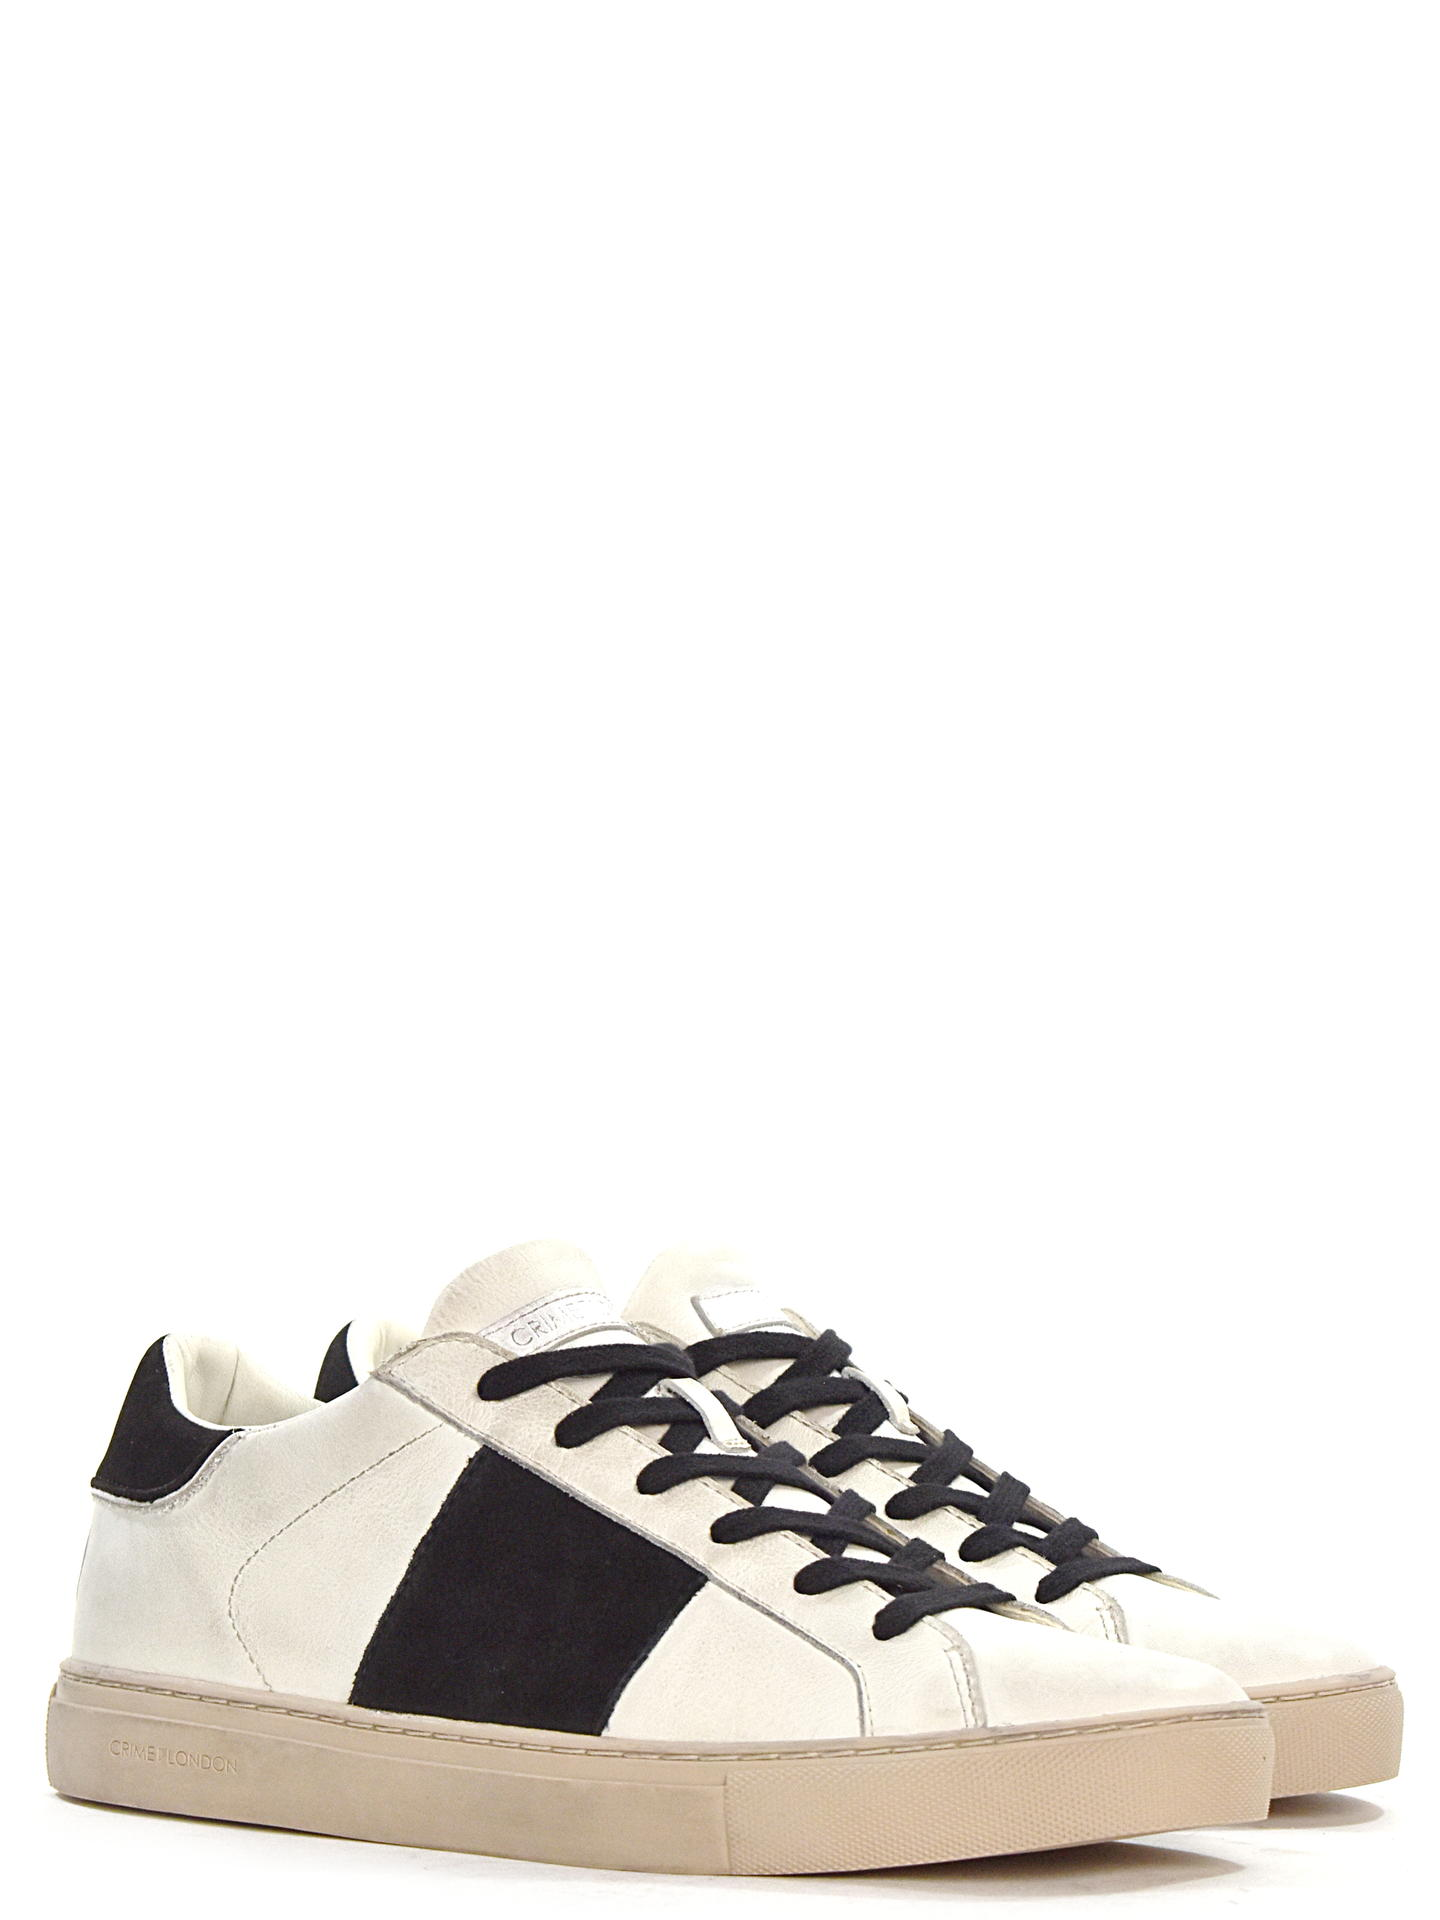 SNEAKERS CRIME LONDON 11639 BIANCO